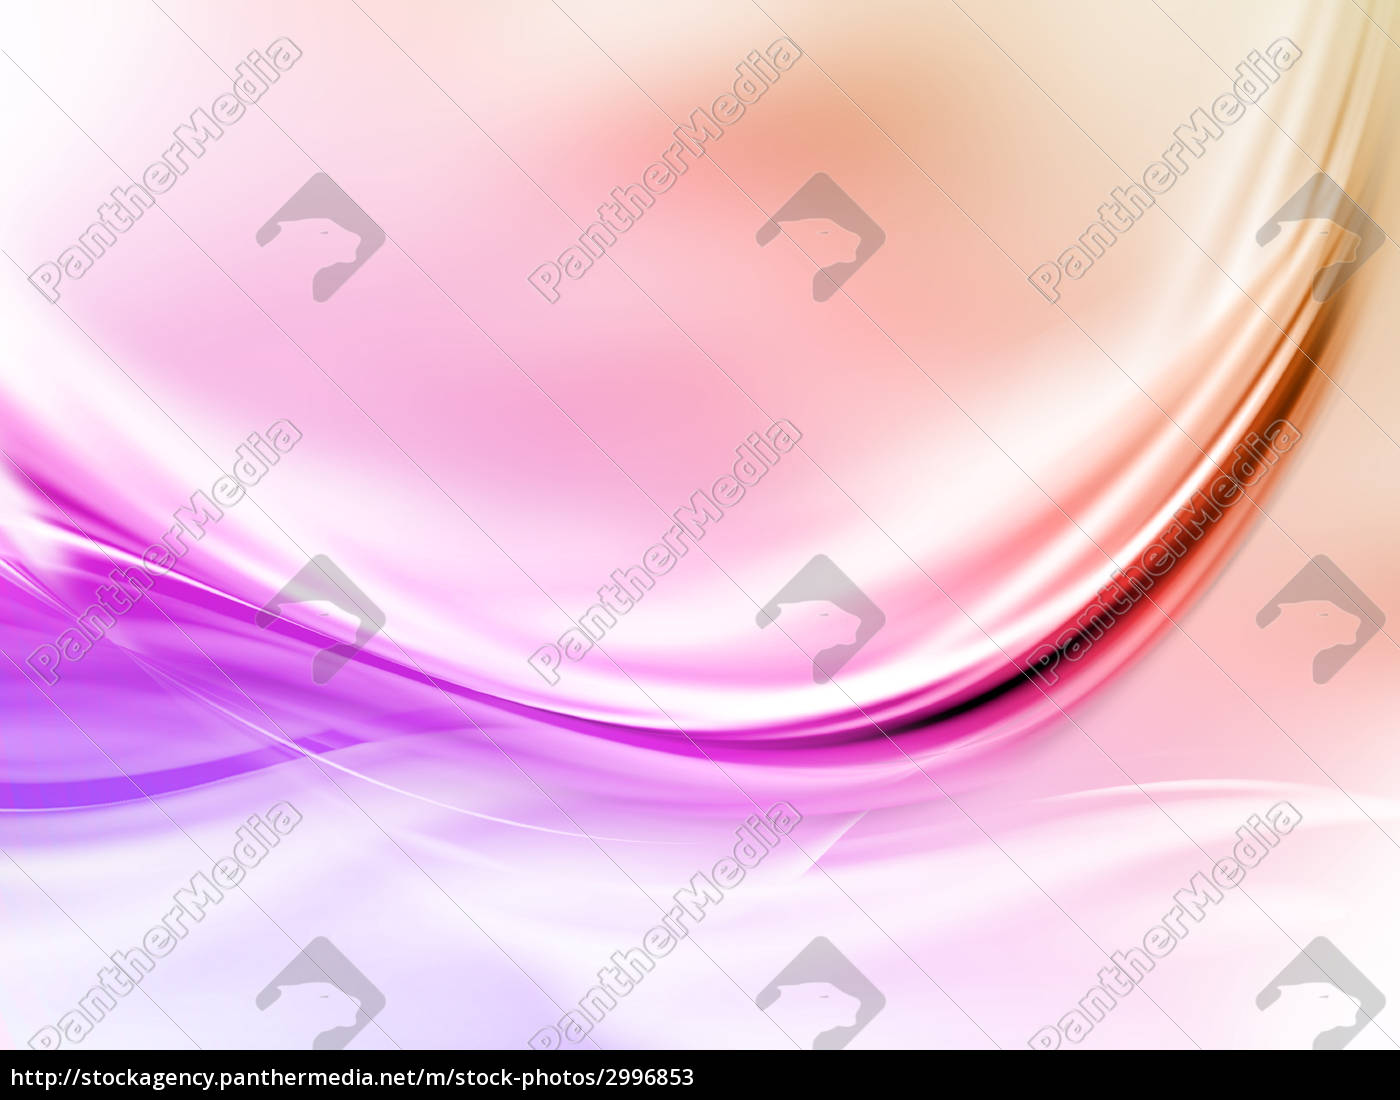 rainbow, abstract - 2996853